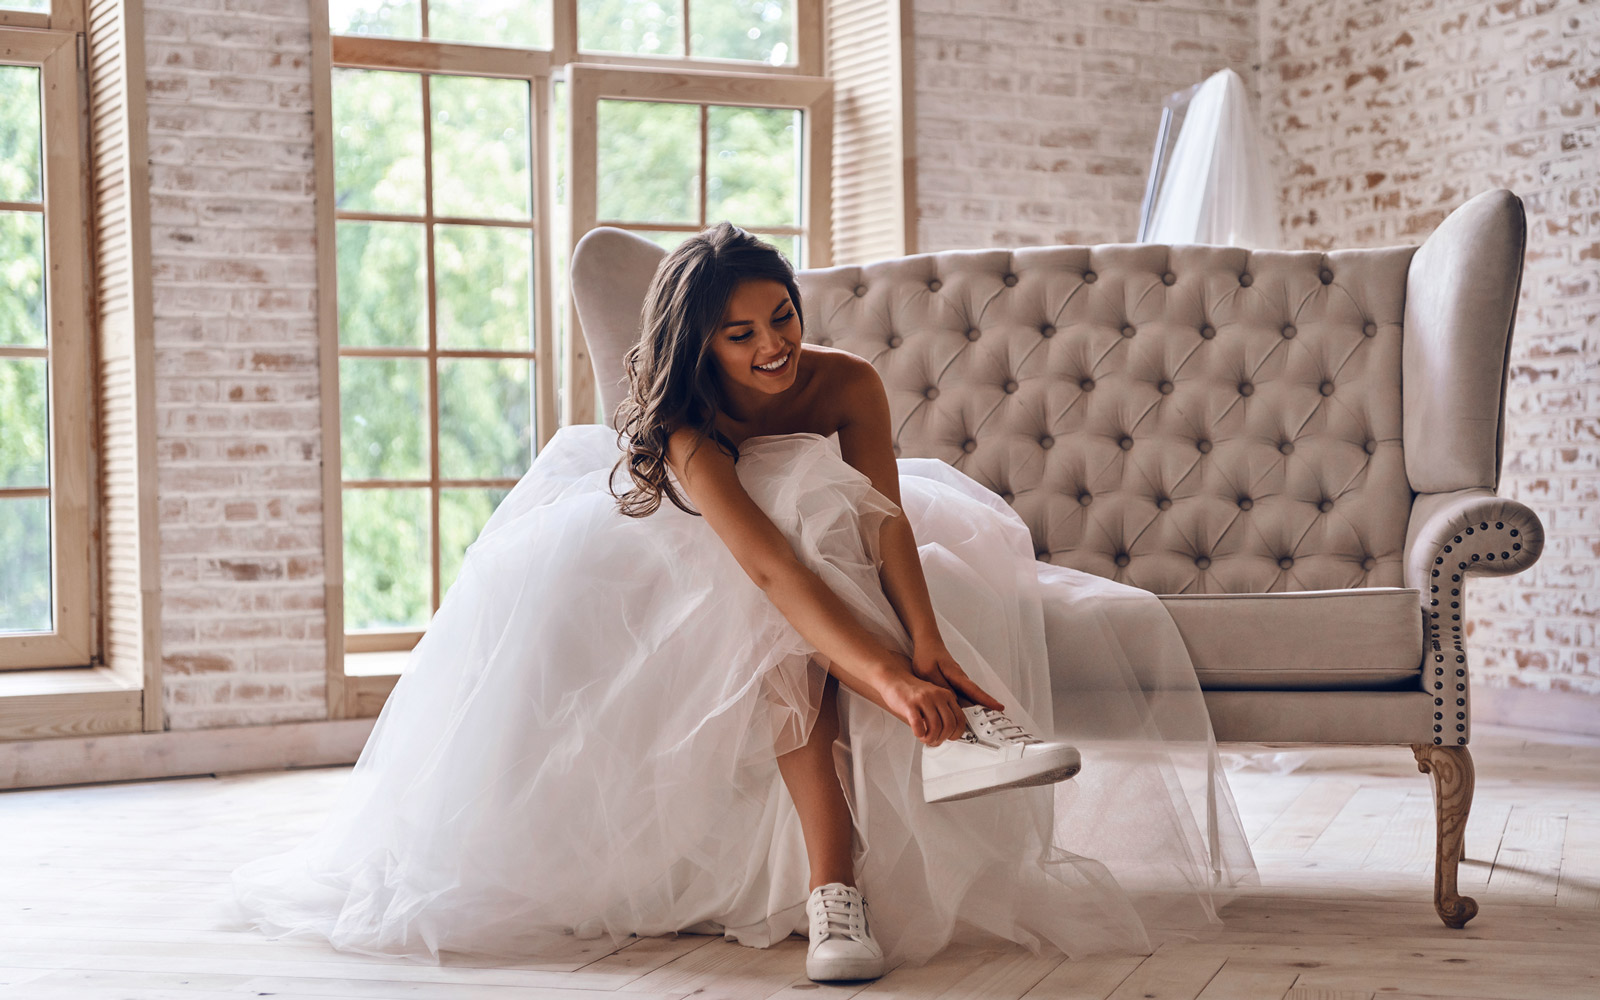 Attractive young woman in wedding dress putting on sports shoes and smiling while sitting on the sofa